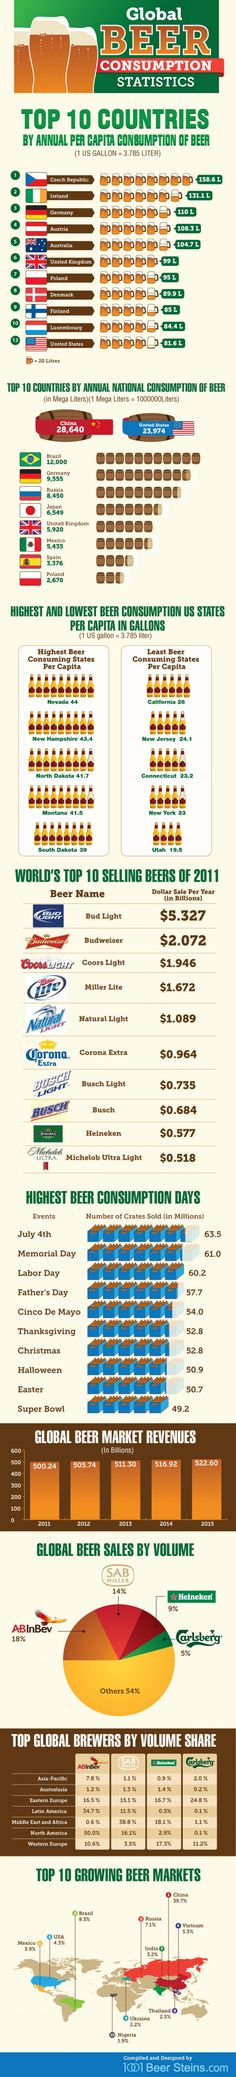 Top 10 Growing Beer Markets Infographic